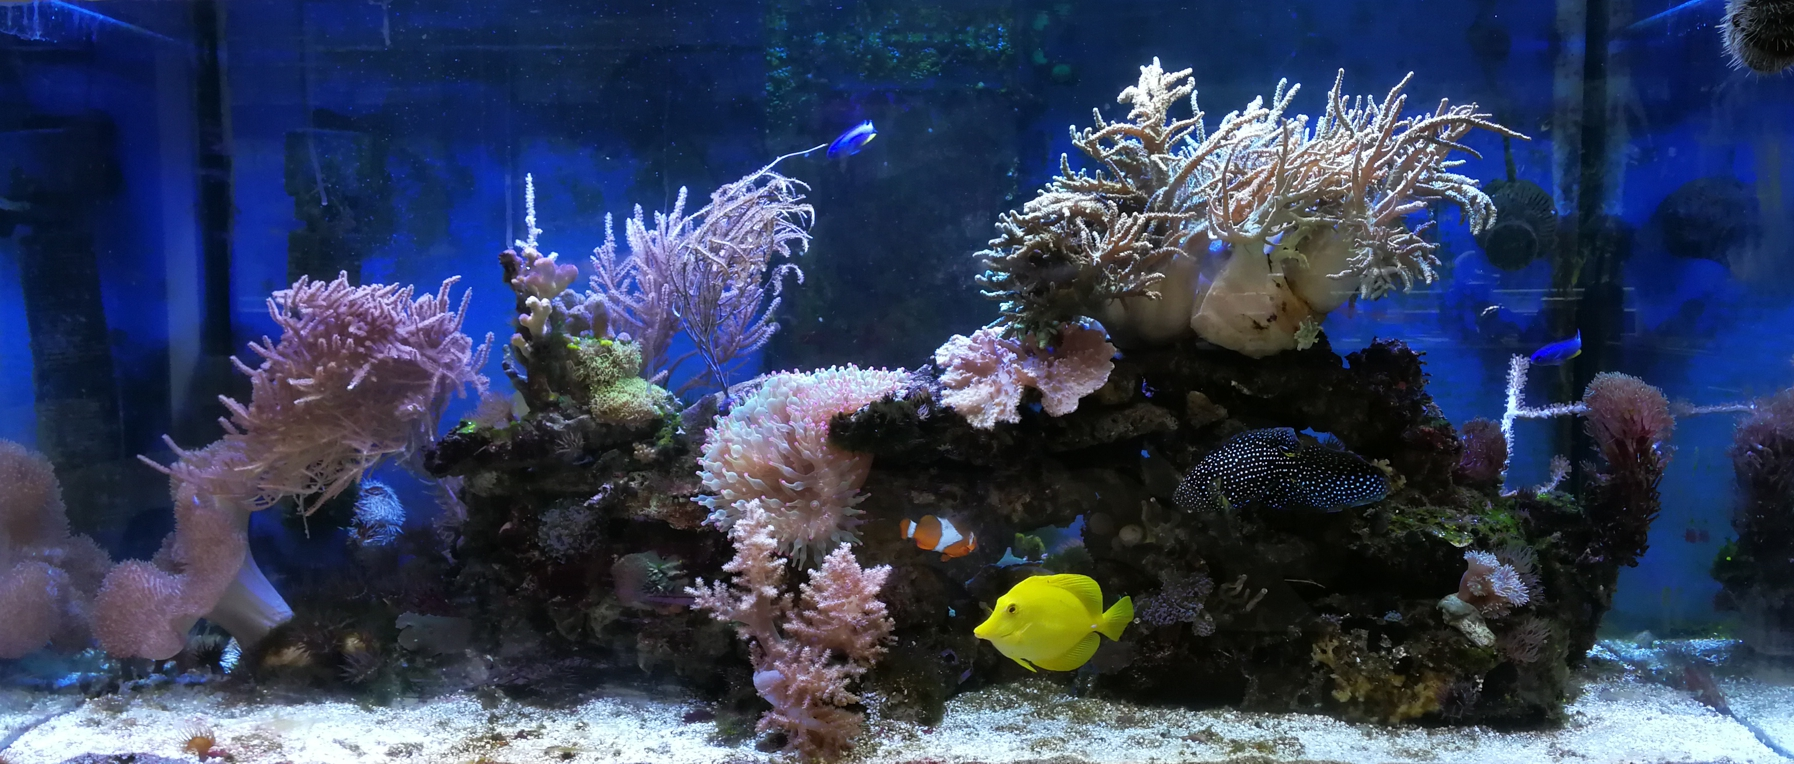 Aquarium August 2018